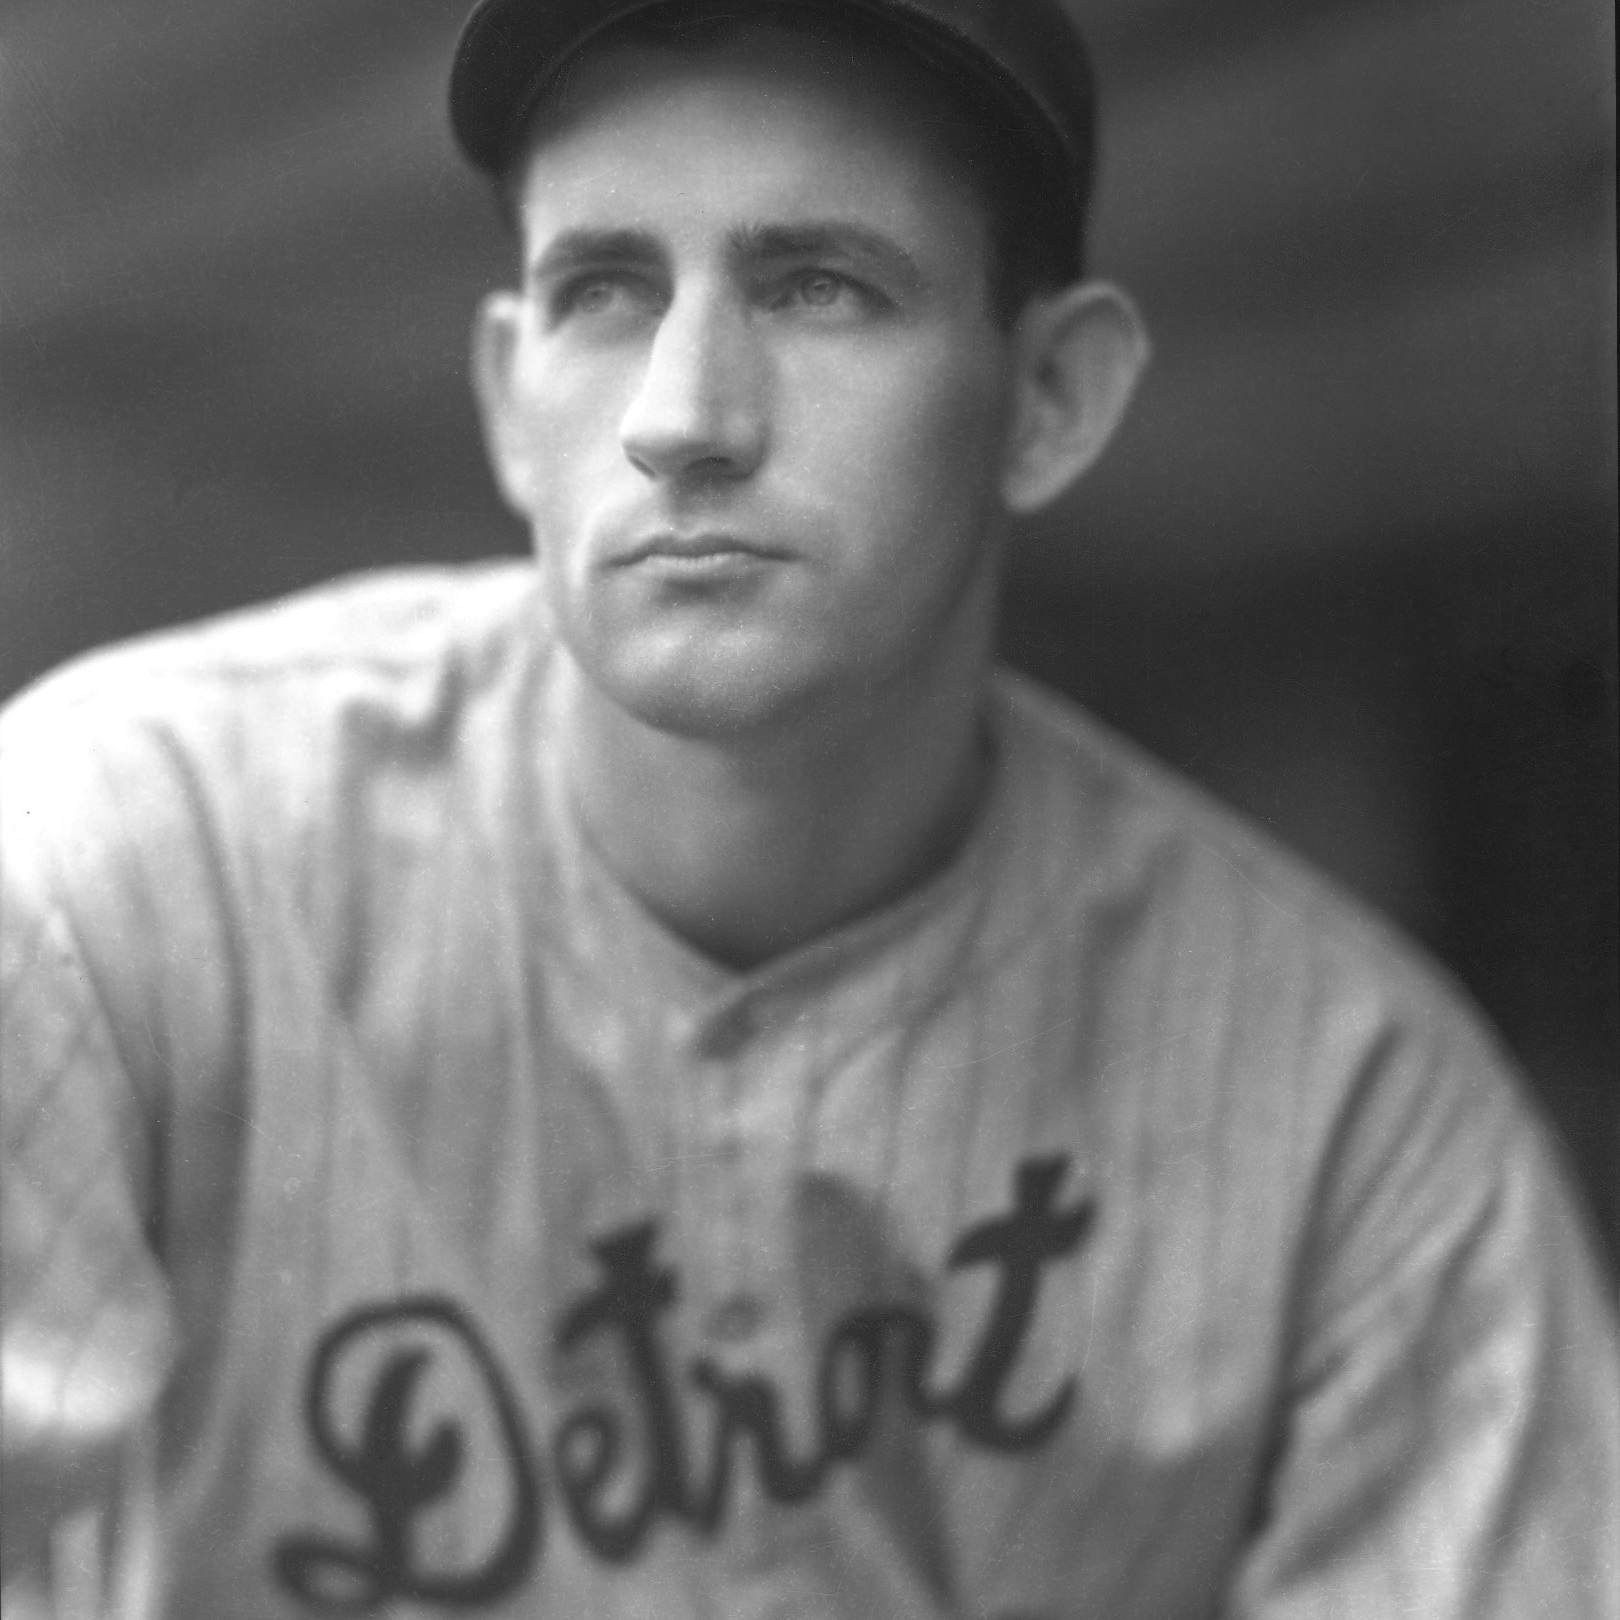 1930s: Detroit Tigers player Charlie Gehringer in a portrait pose.